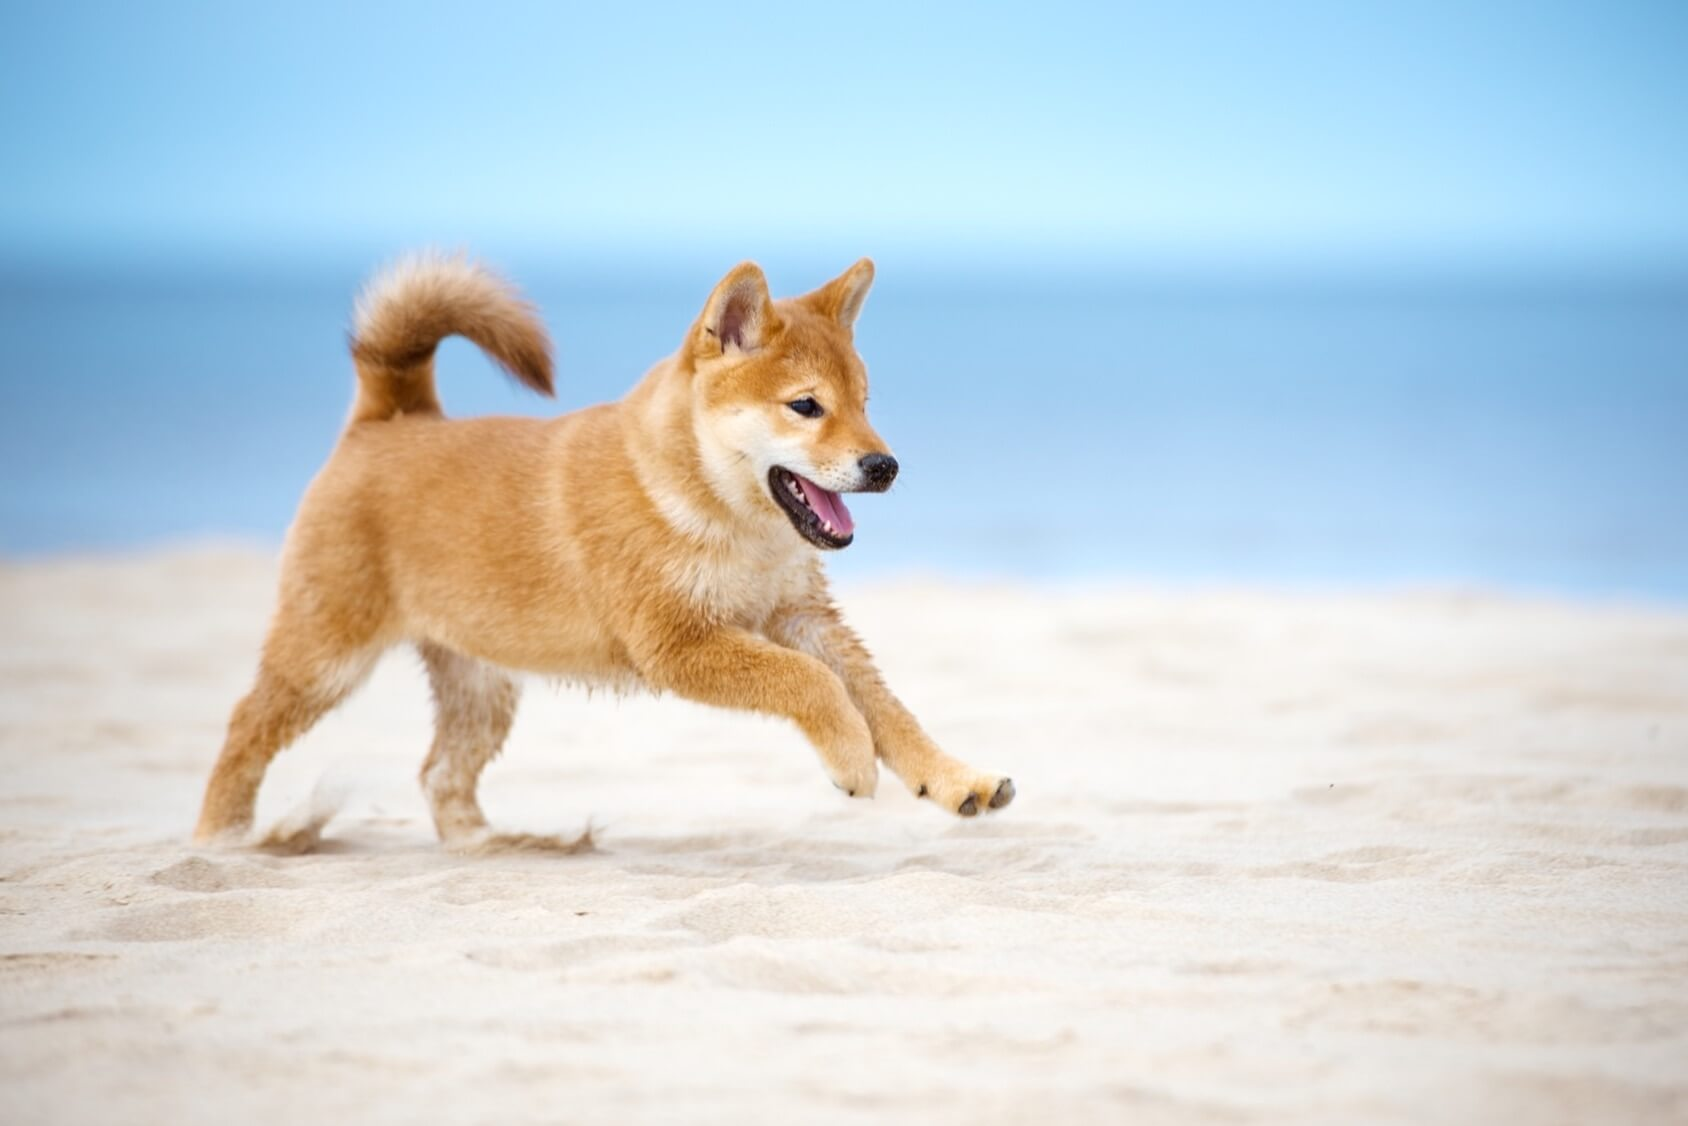 Shiba Inu The Small And Mighty Fox Like Dog Perfect Dog Breeds